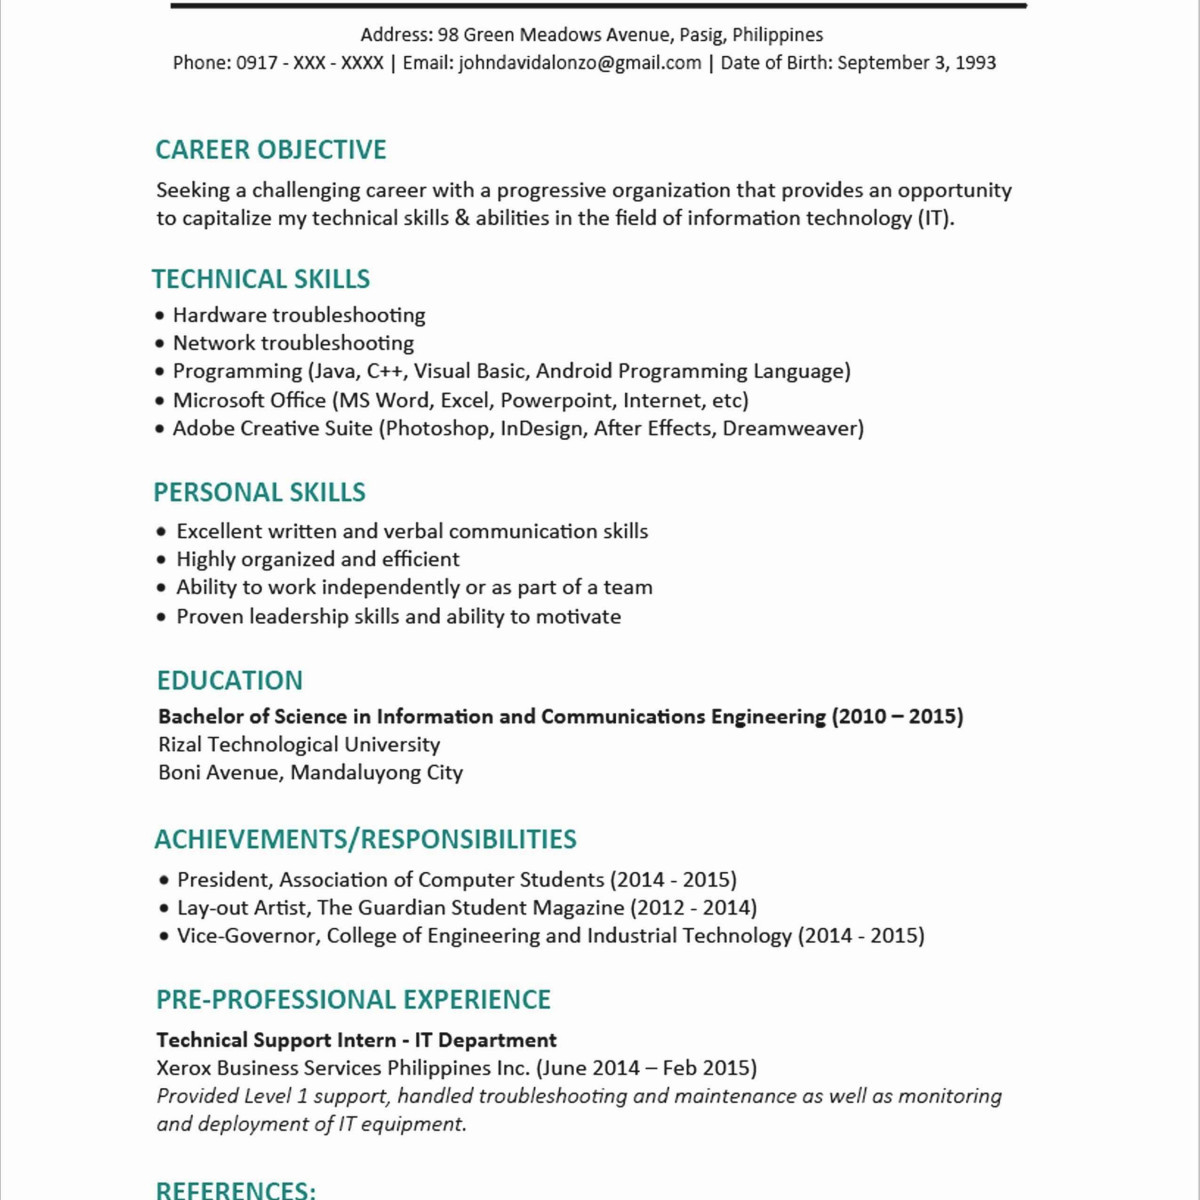 resume for scholarships template example-scholarship resume beautiful resume templates elegant scholarship resume example 2018 fresh resume for highschool students excellent resumes 0d resume 8-g